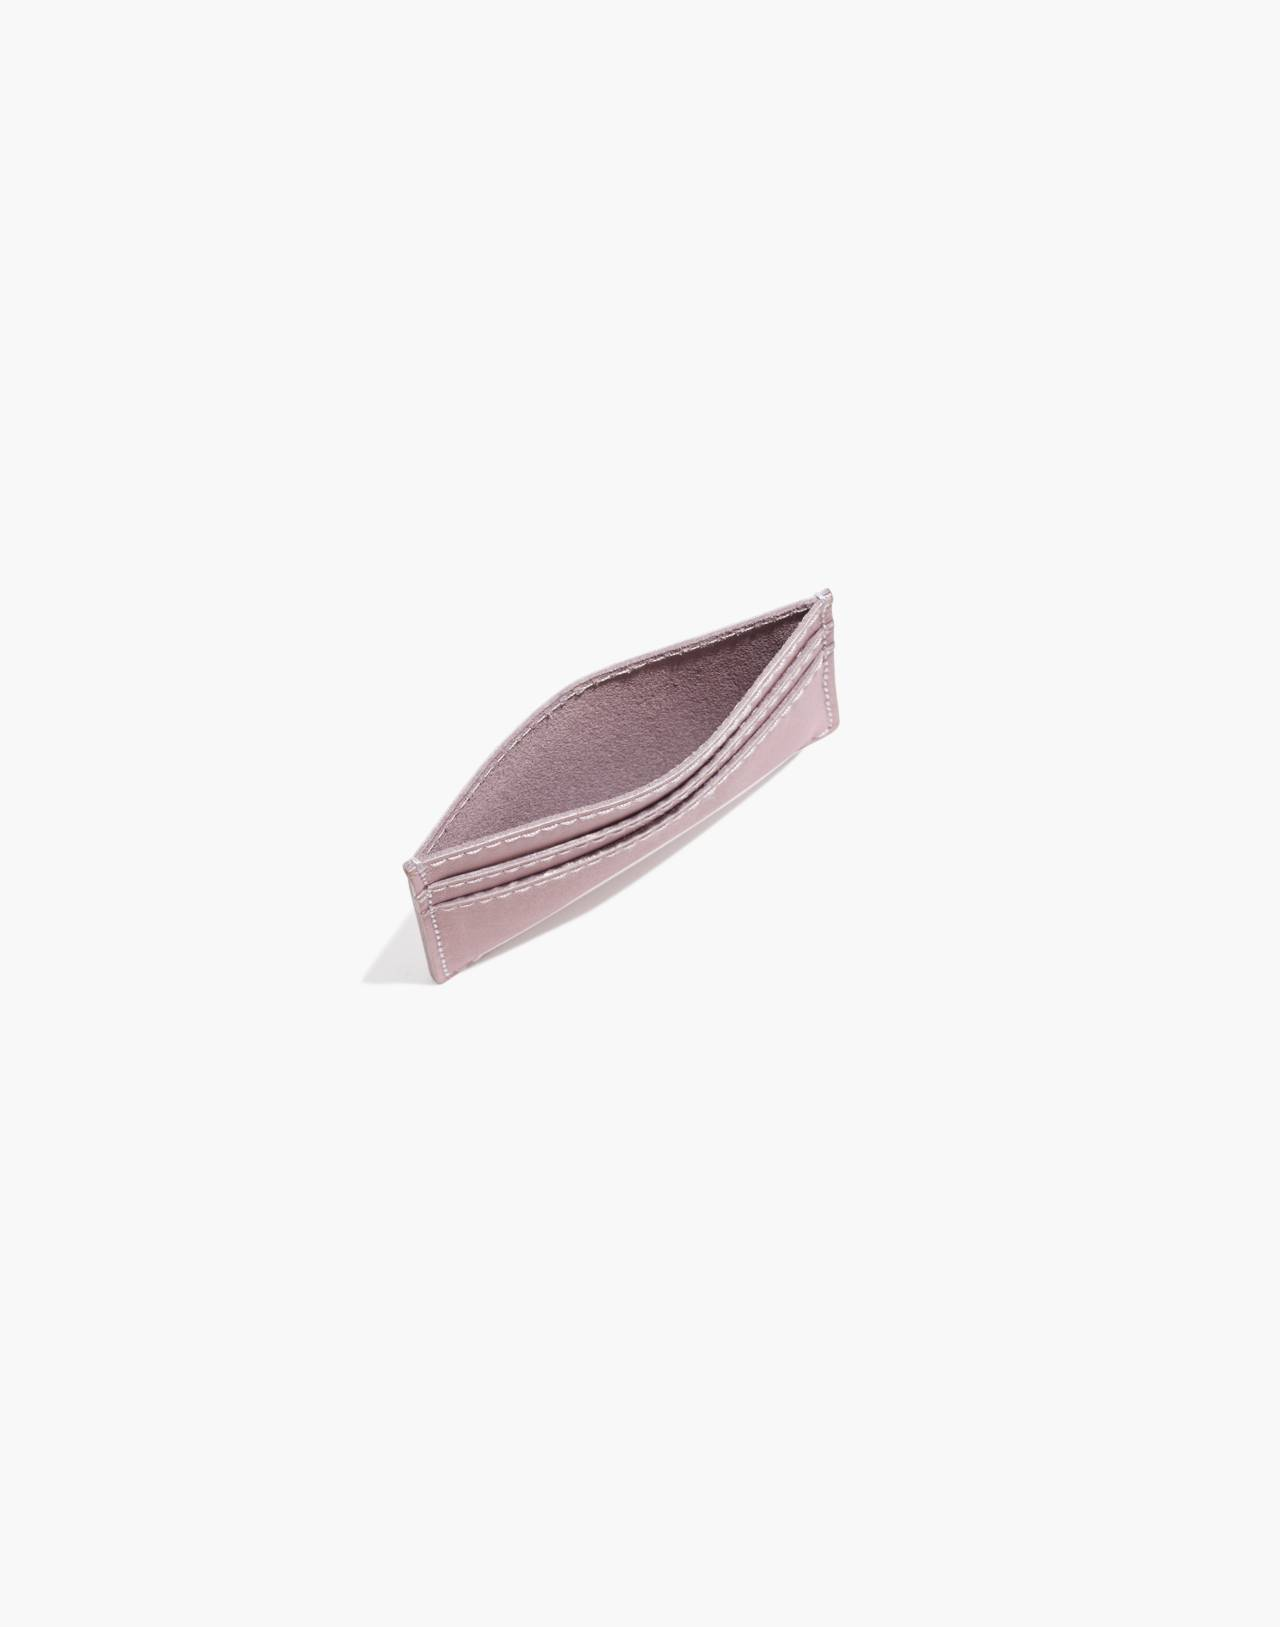 The Leather Card Case in wisteria dove image 2